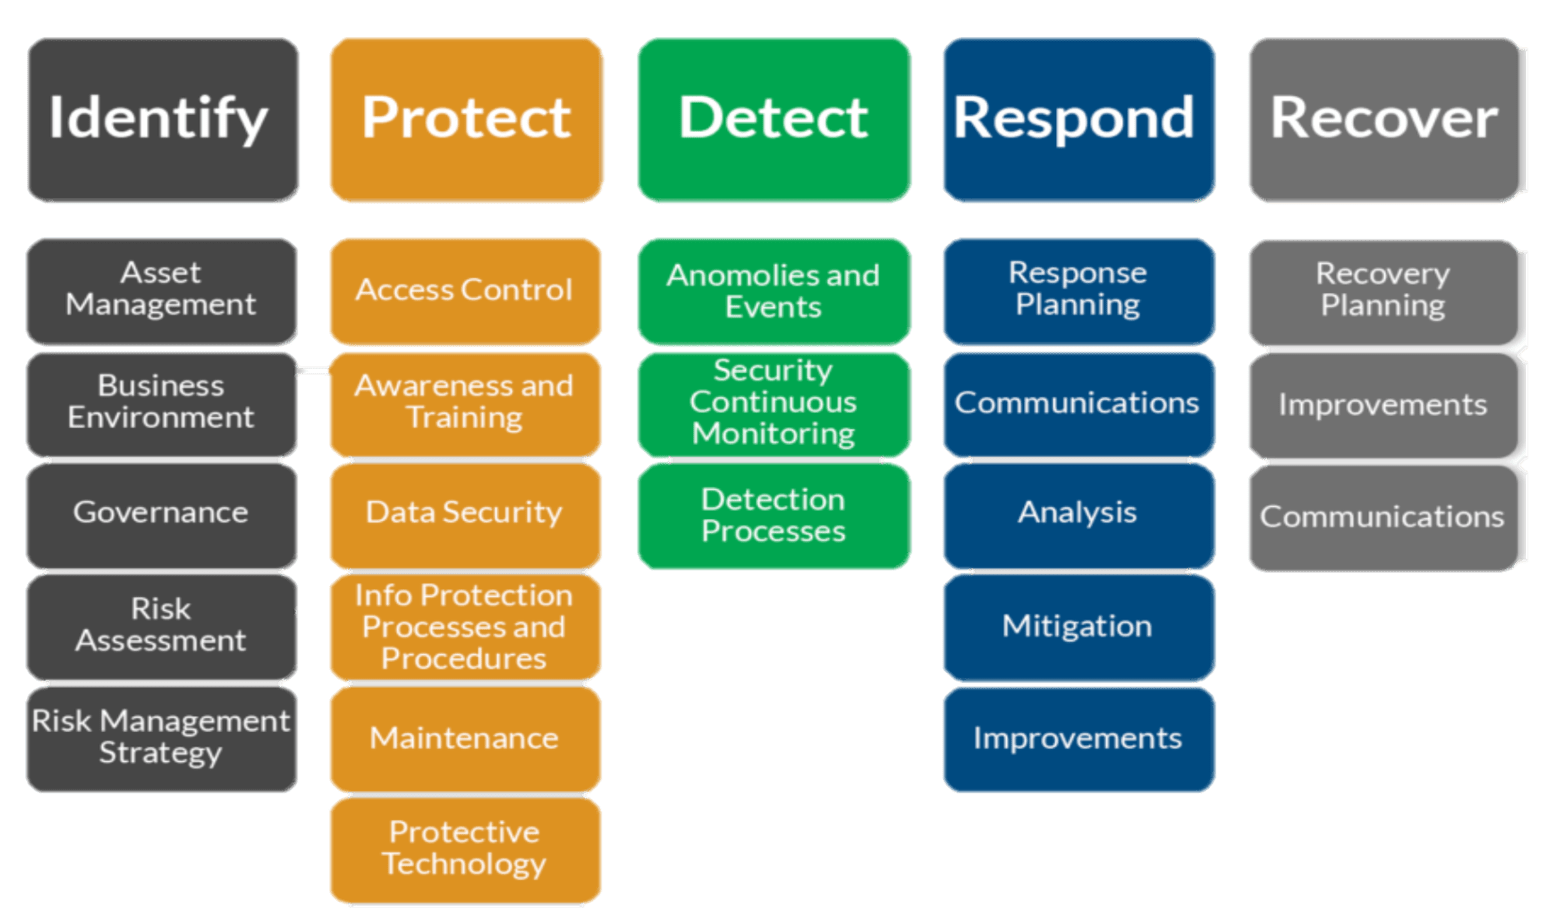 Overview of the NIST security framework.